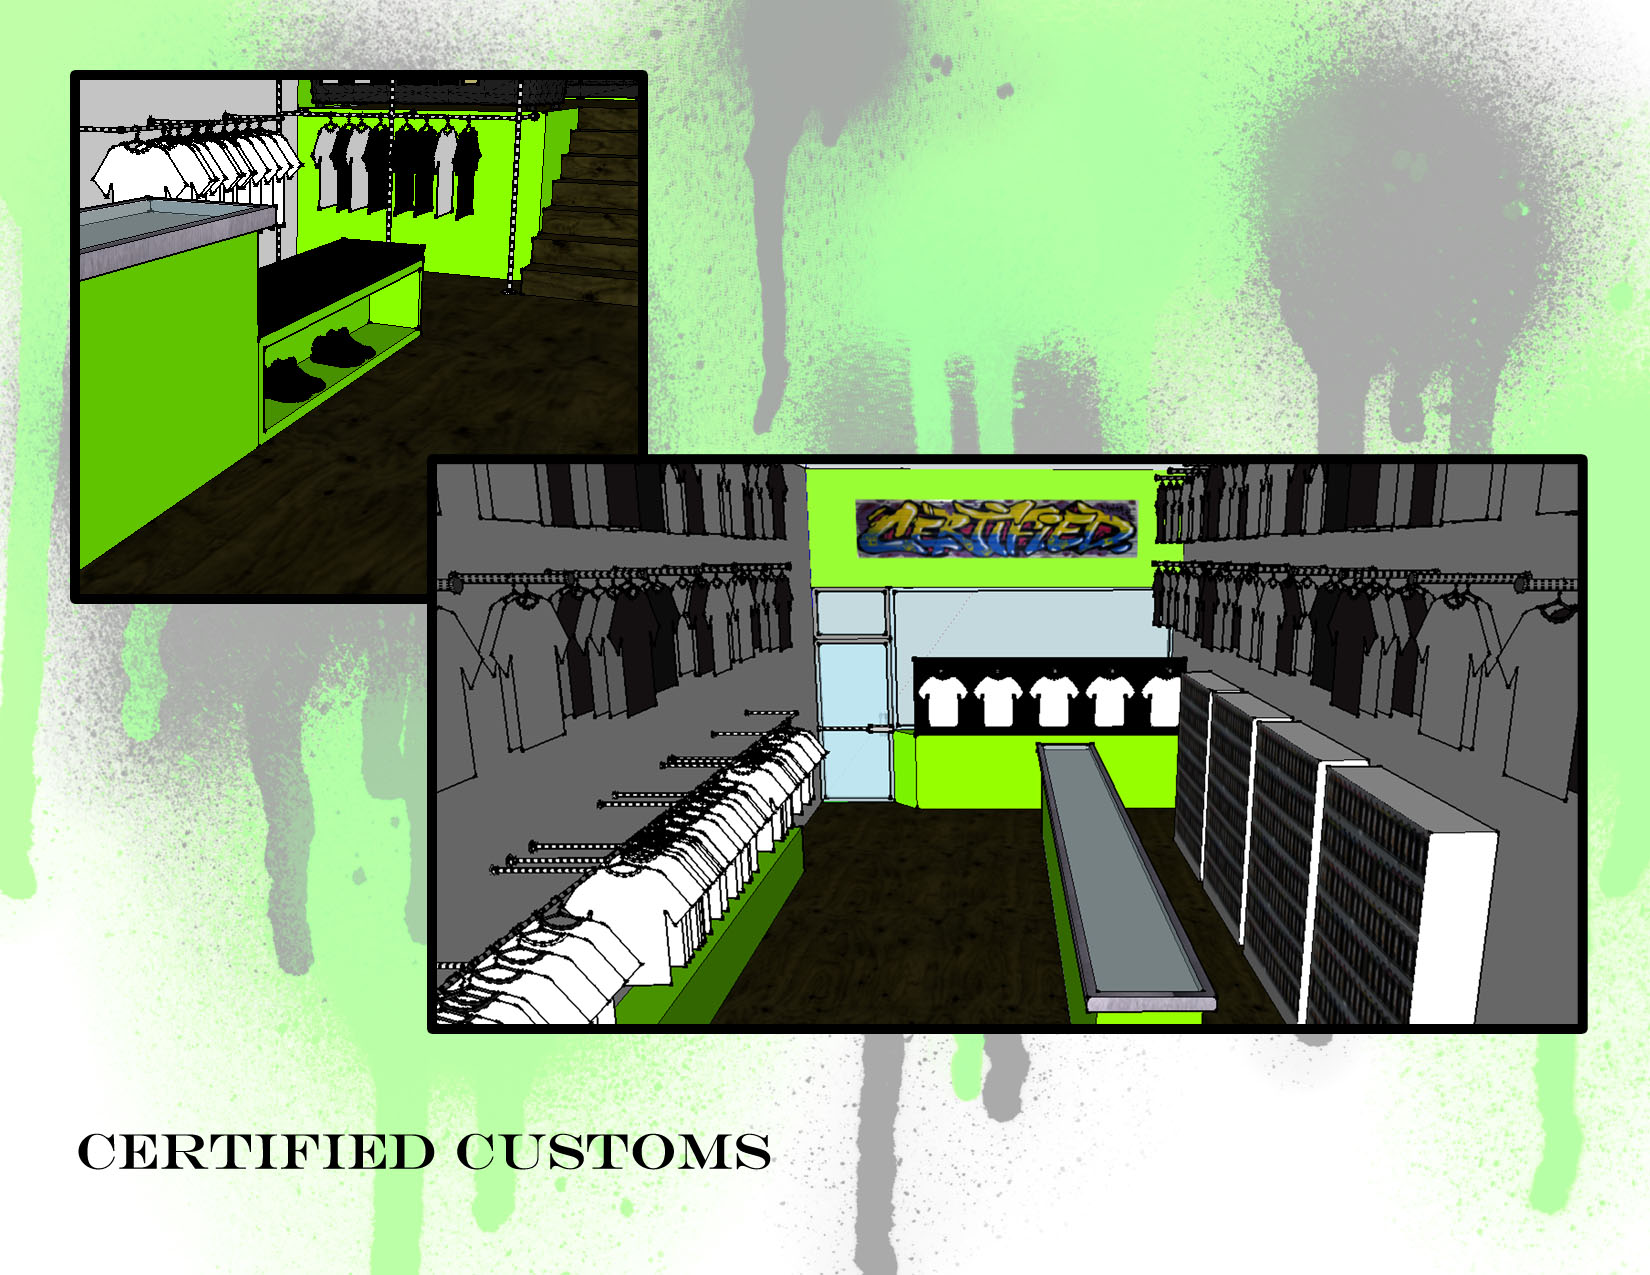 Commercial Design Projects By Renee Corbin At